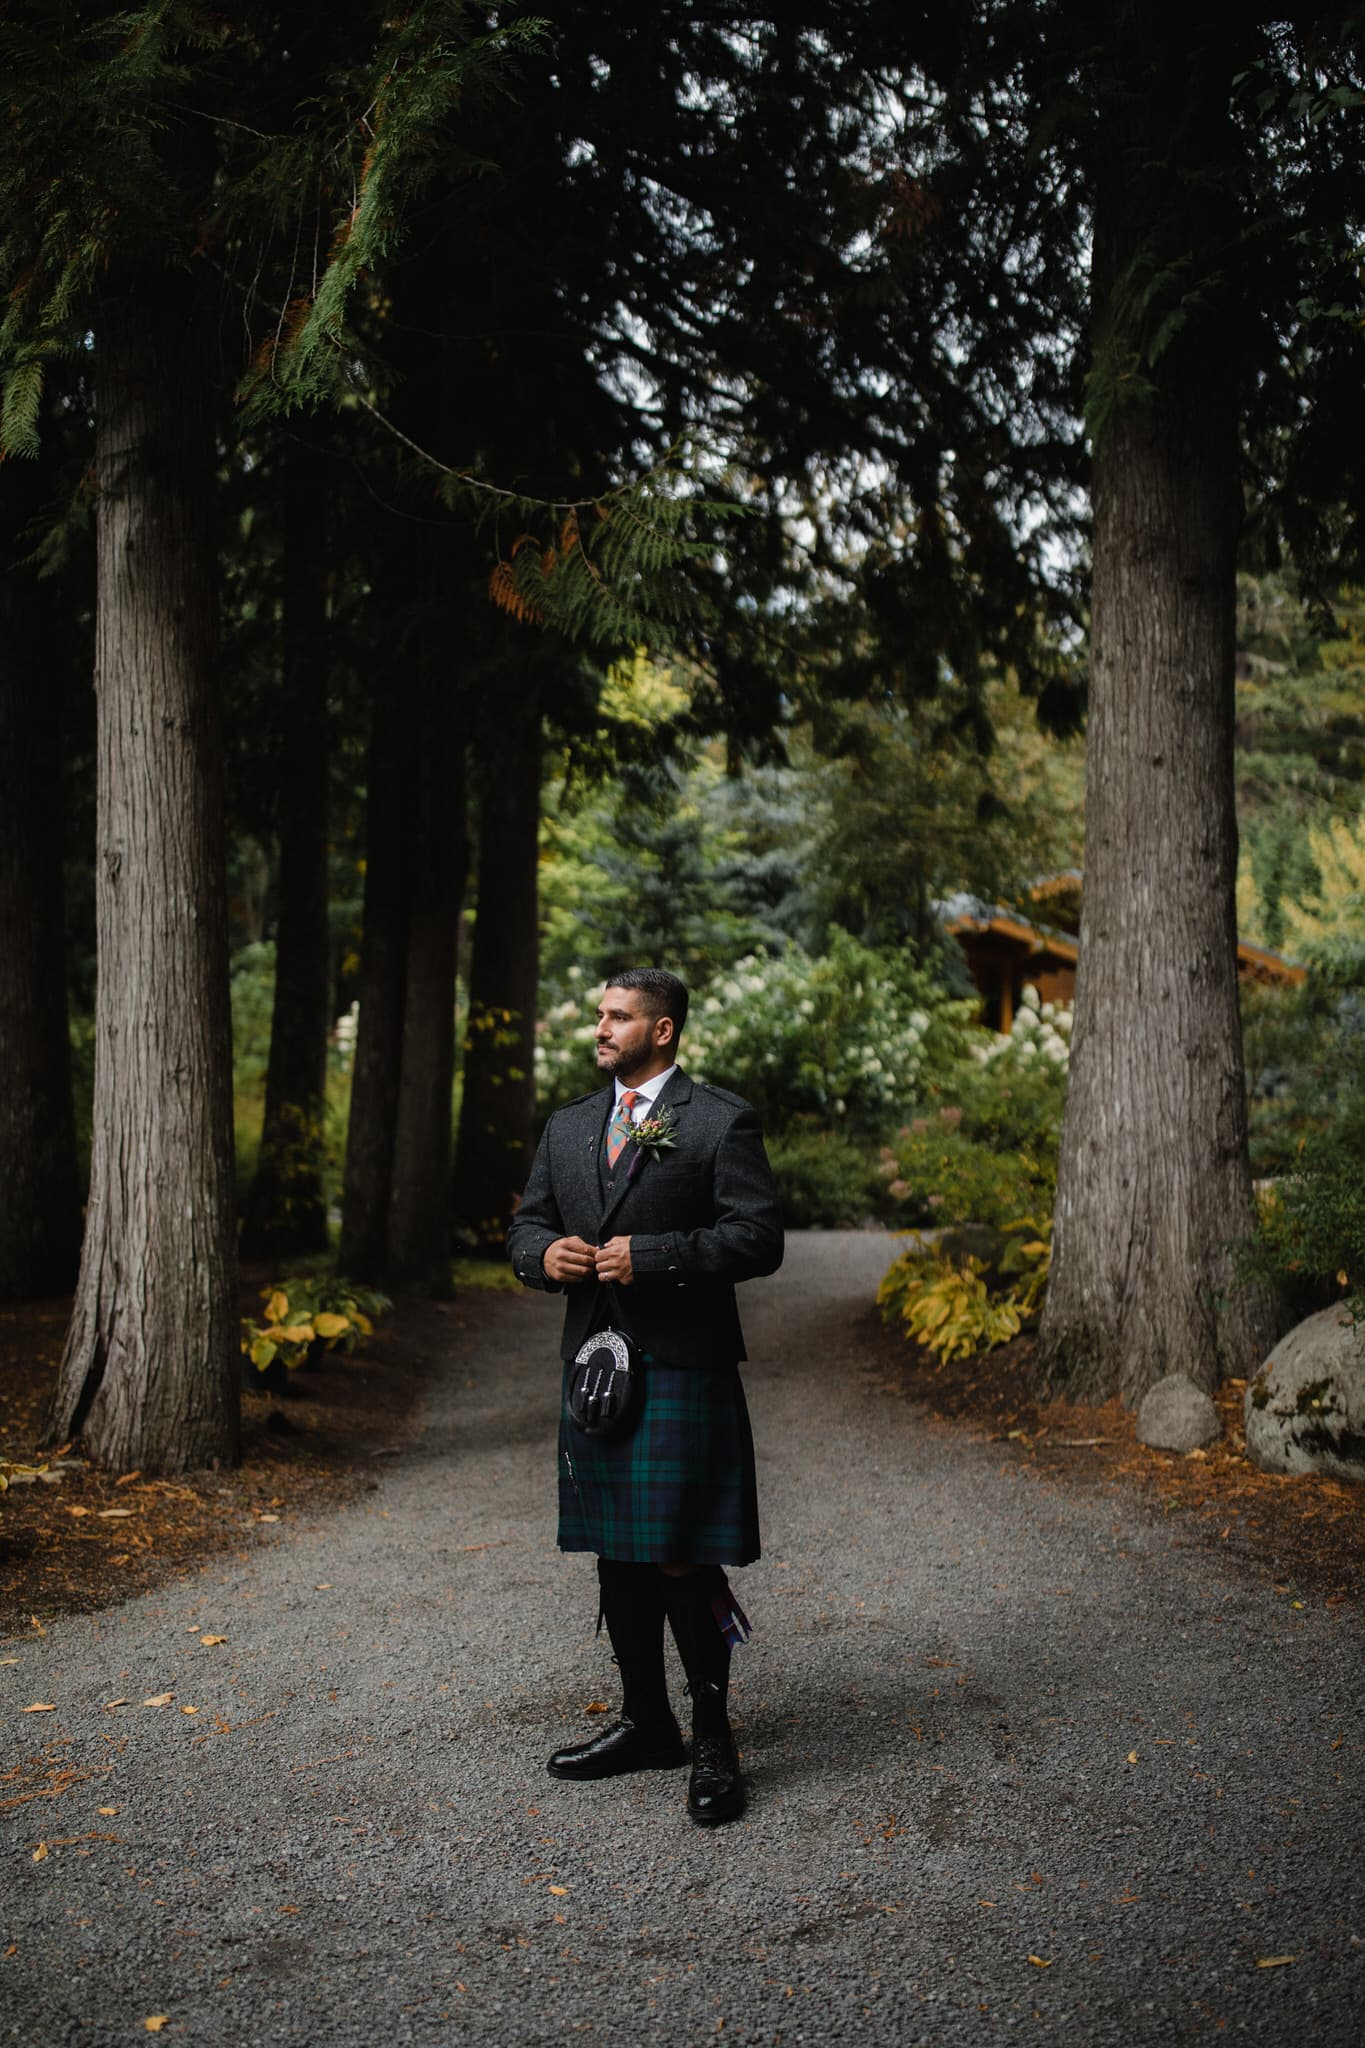 Groom in kilt before forest wedding in mountains of Whistler. Destination wedding photographer Brent Calis.